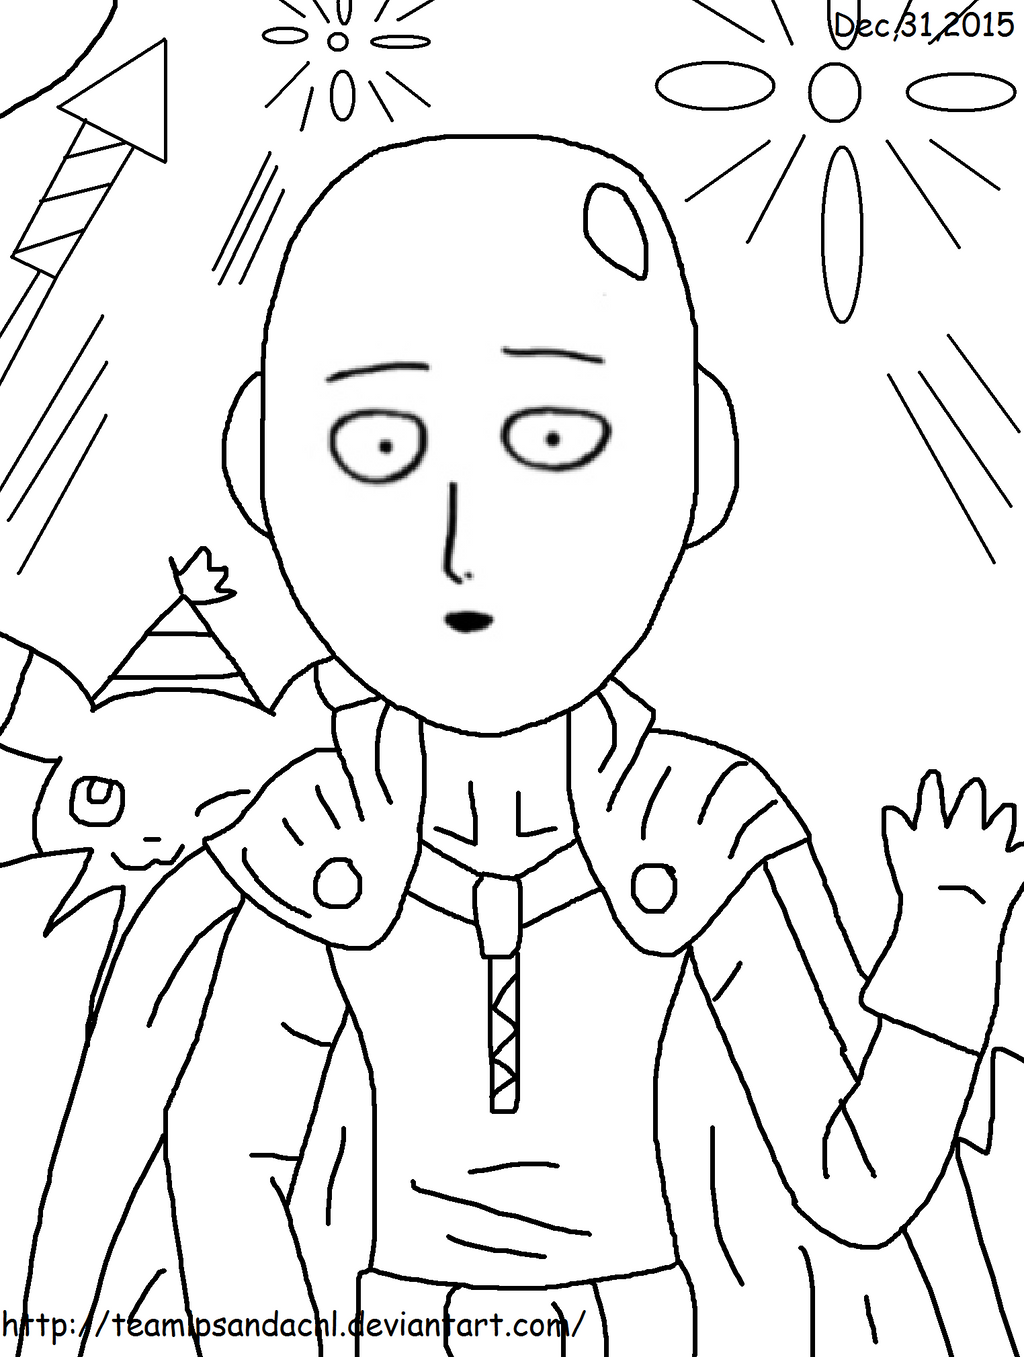 New Year S Line Art : New year saitama line art by teamlpsandacnl on deviantart